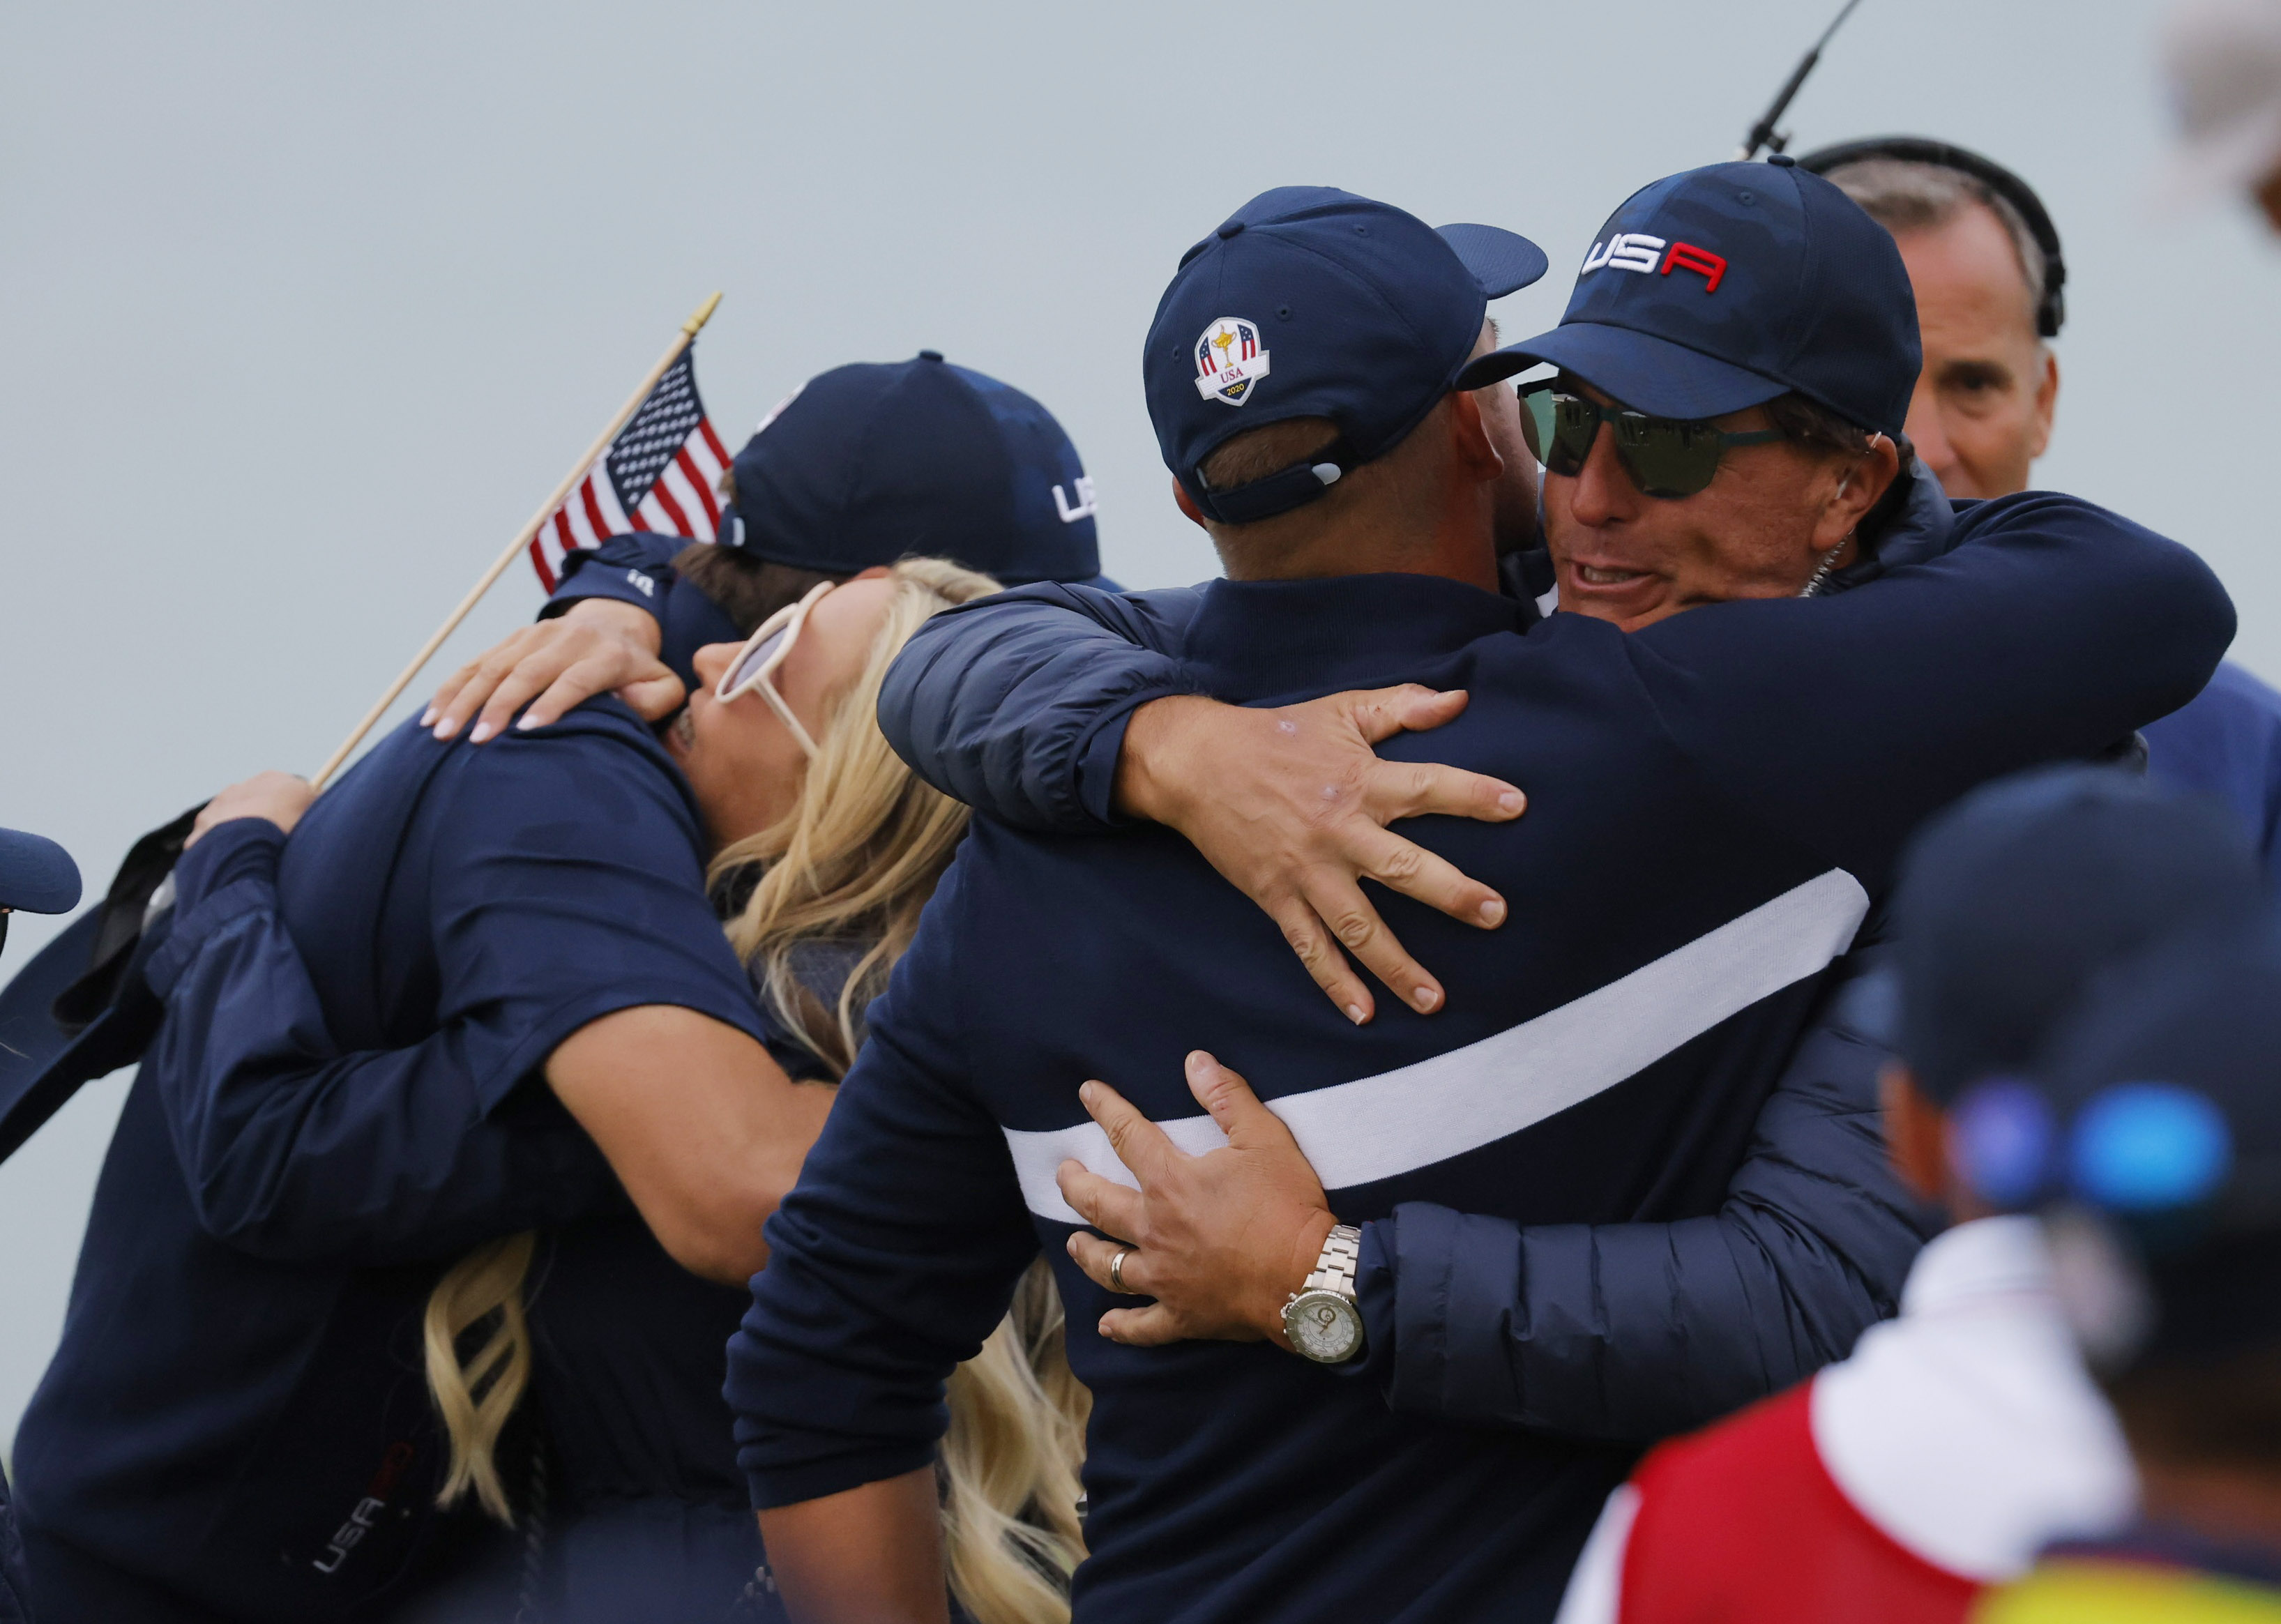 Golf - The 2020 Ryder Cup - Whistling Straits, Sheboygan, Wisconsin, U.S. - September 25, 2021 Team USA's Bryson DeChambeau celebrates with Team USA vice captain Phil Mickelson on the 17th green after winning the match during the Four-balls REUTERS/Mike Segar